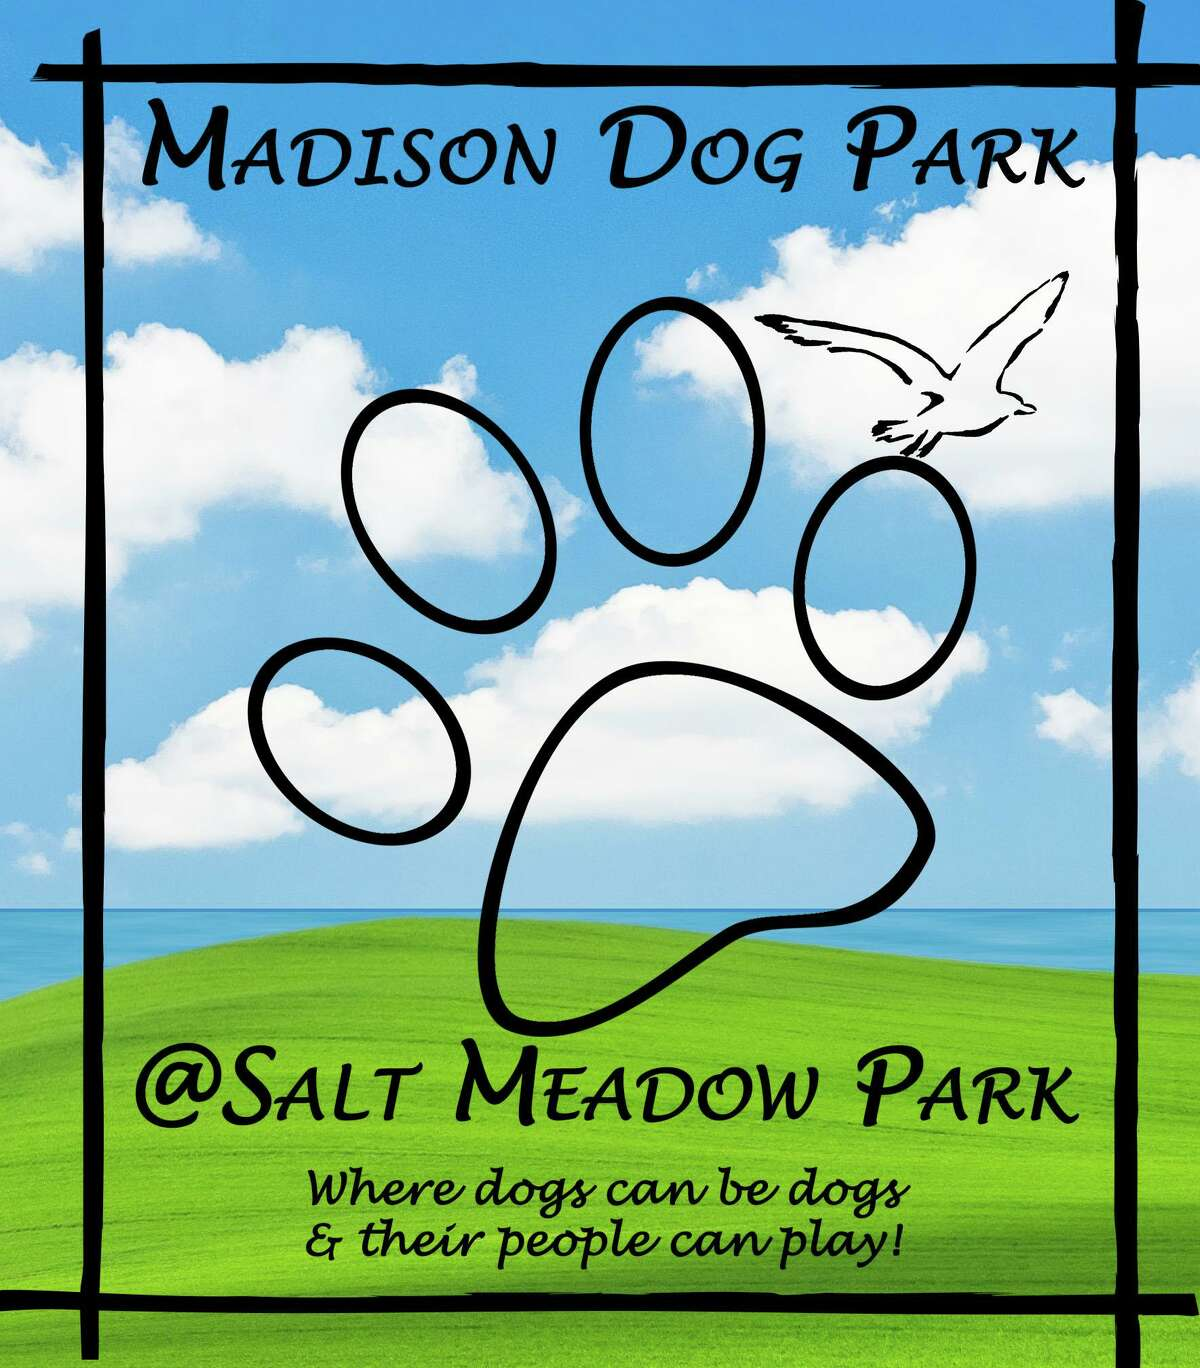 Work on the Madison Dog Park has begun, following the town's application approval